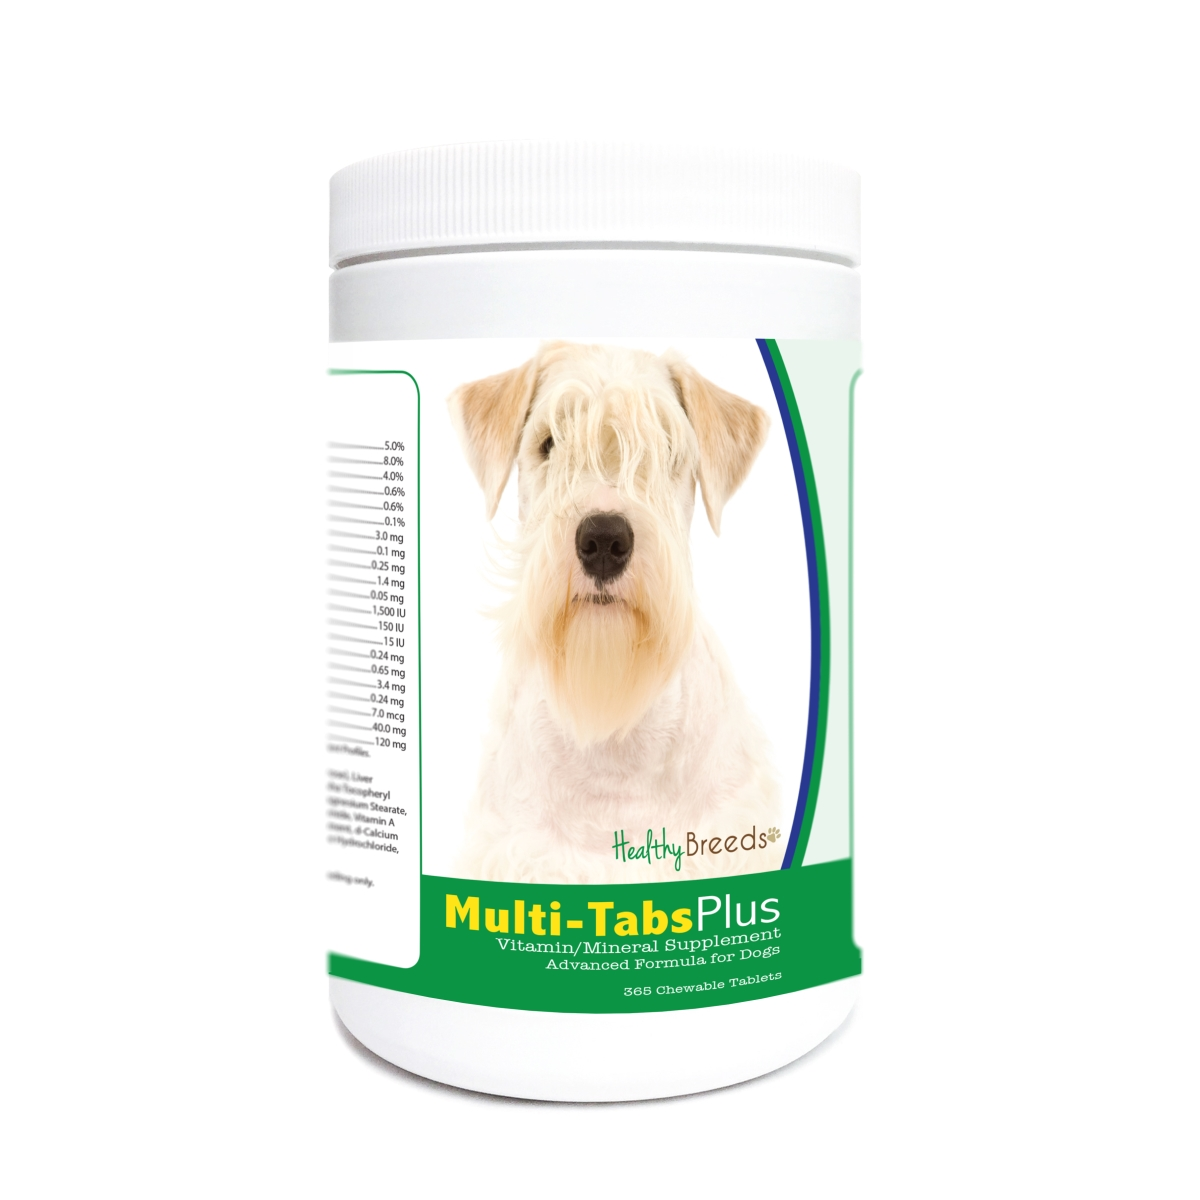 Healthy Breeds 840235172765 Sealyham Terrier Multi-Tabs Plus Chewable Tablets - 365 Count